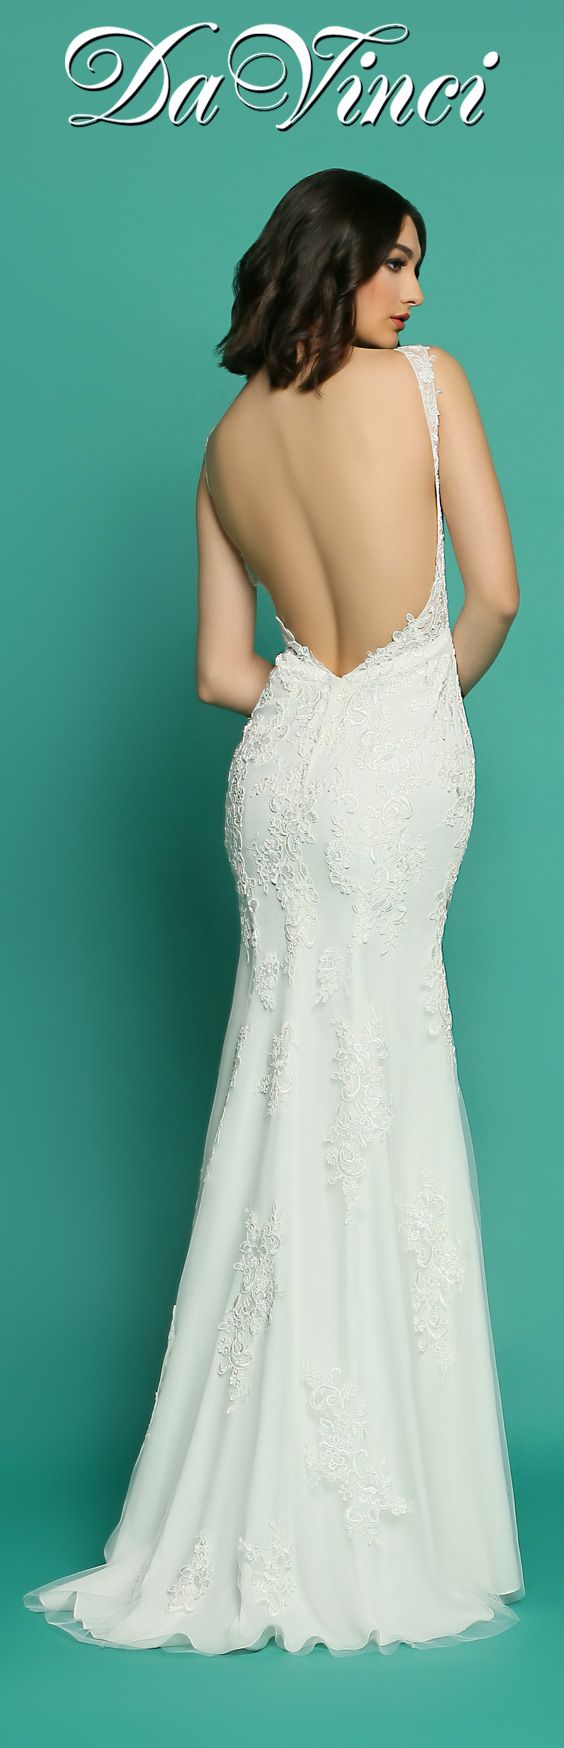 287 best Gorgeous Backs images on Pinterest | Short wedding gowns ...